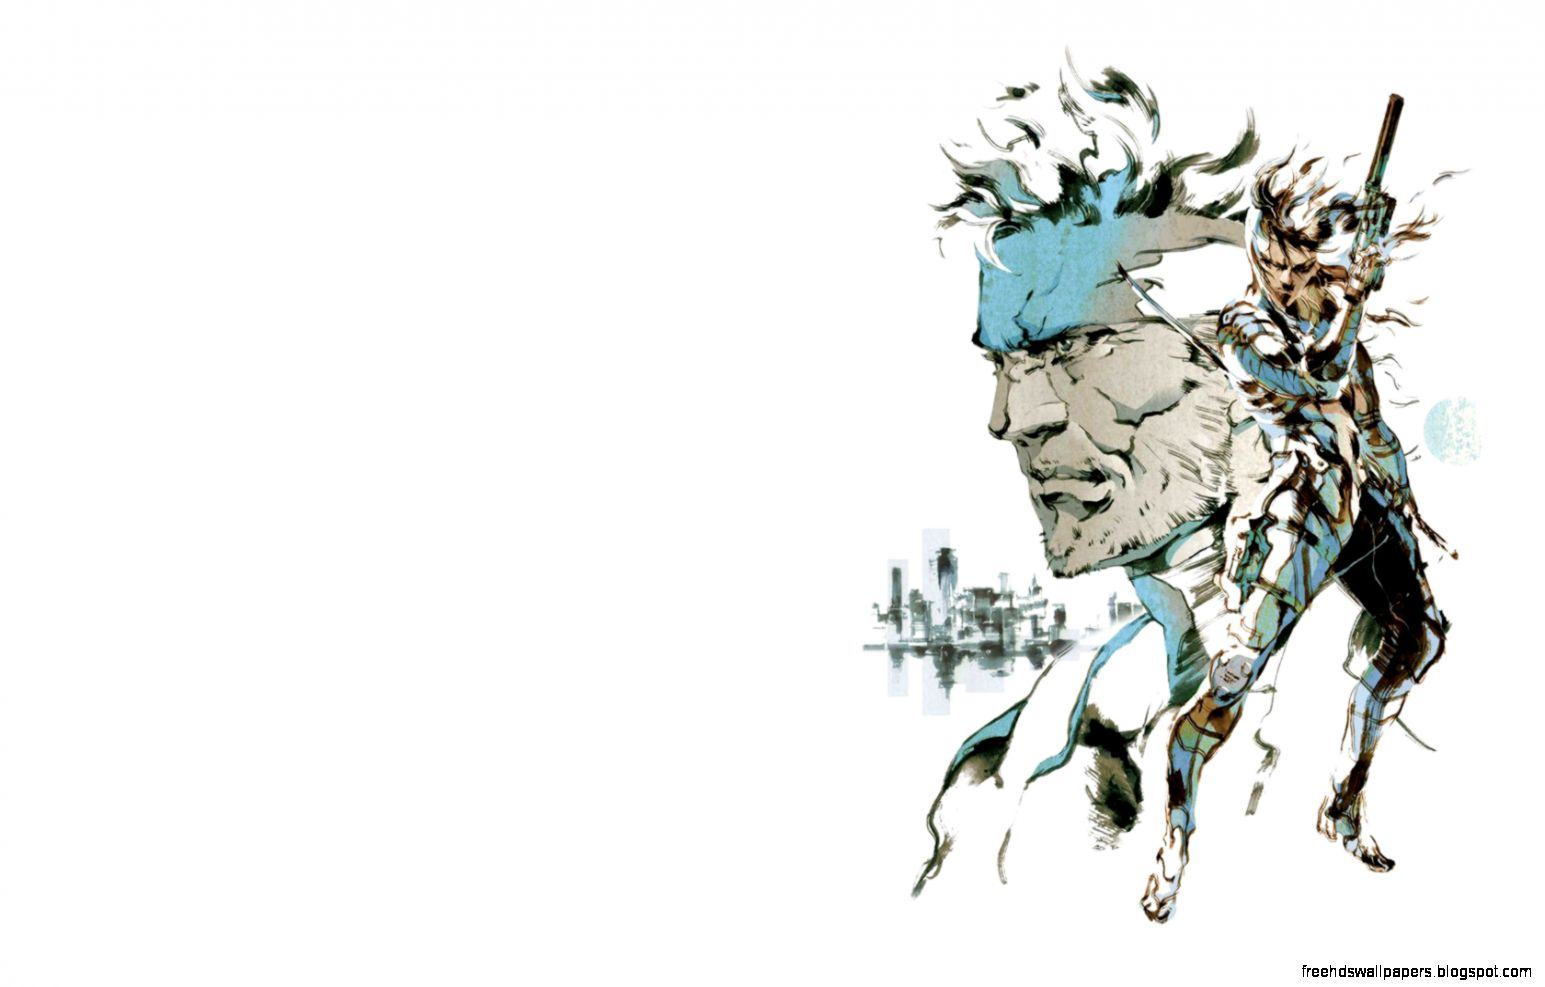 Metal Gear Solid Wallpaper Free Hd Wallpapers